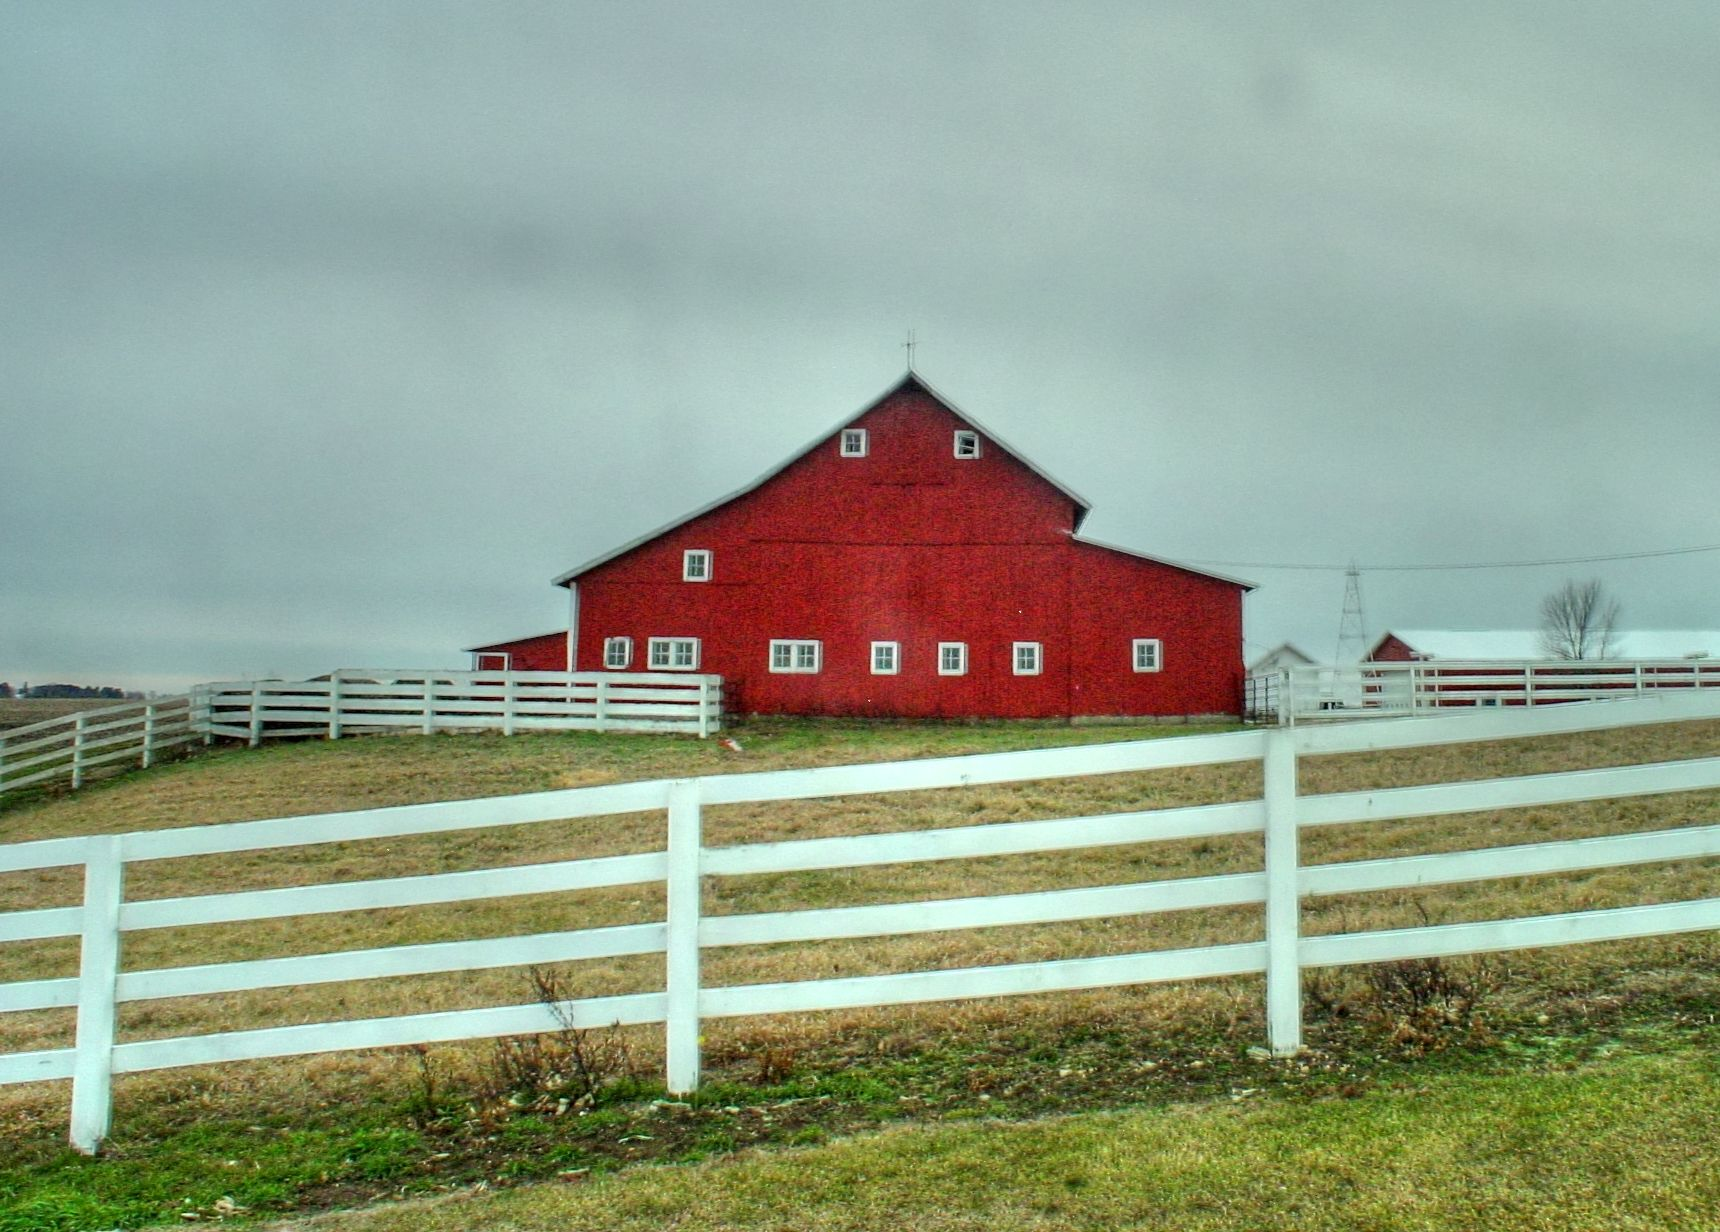 Little red barn with white fence.